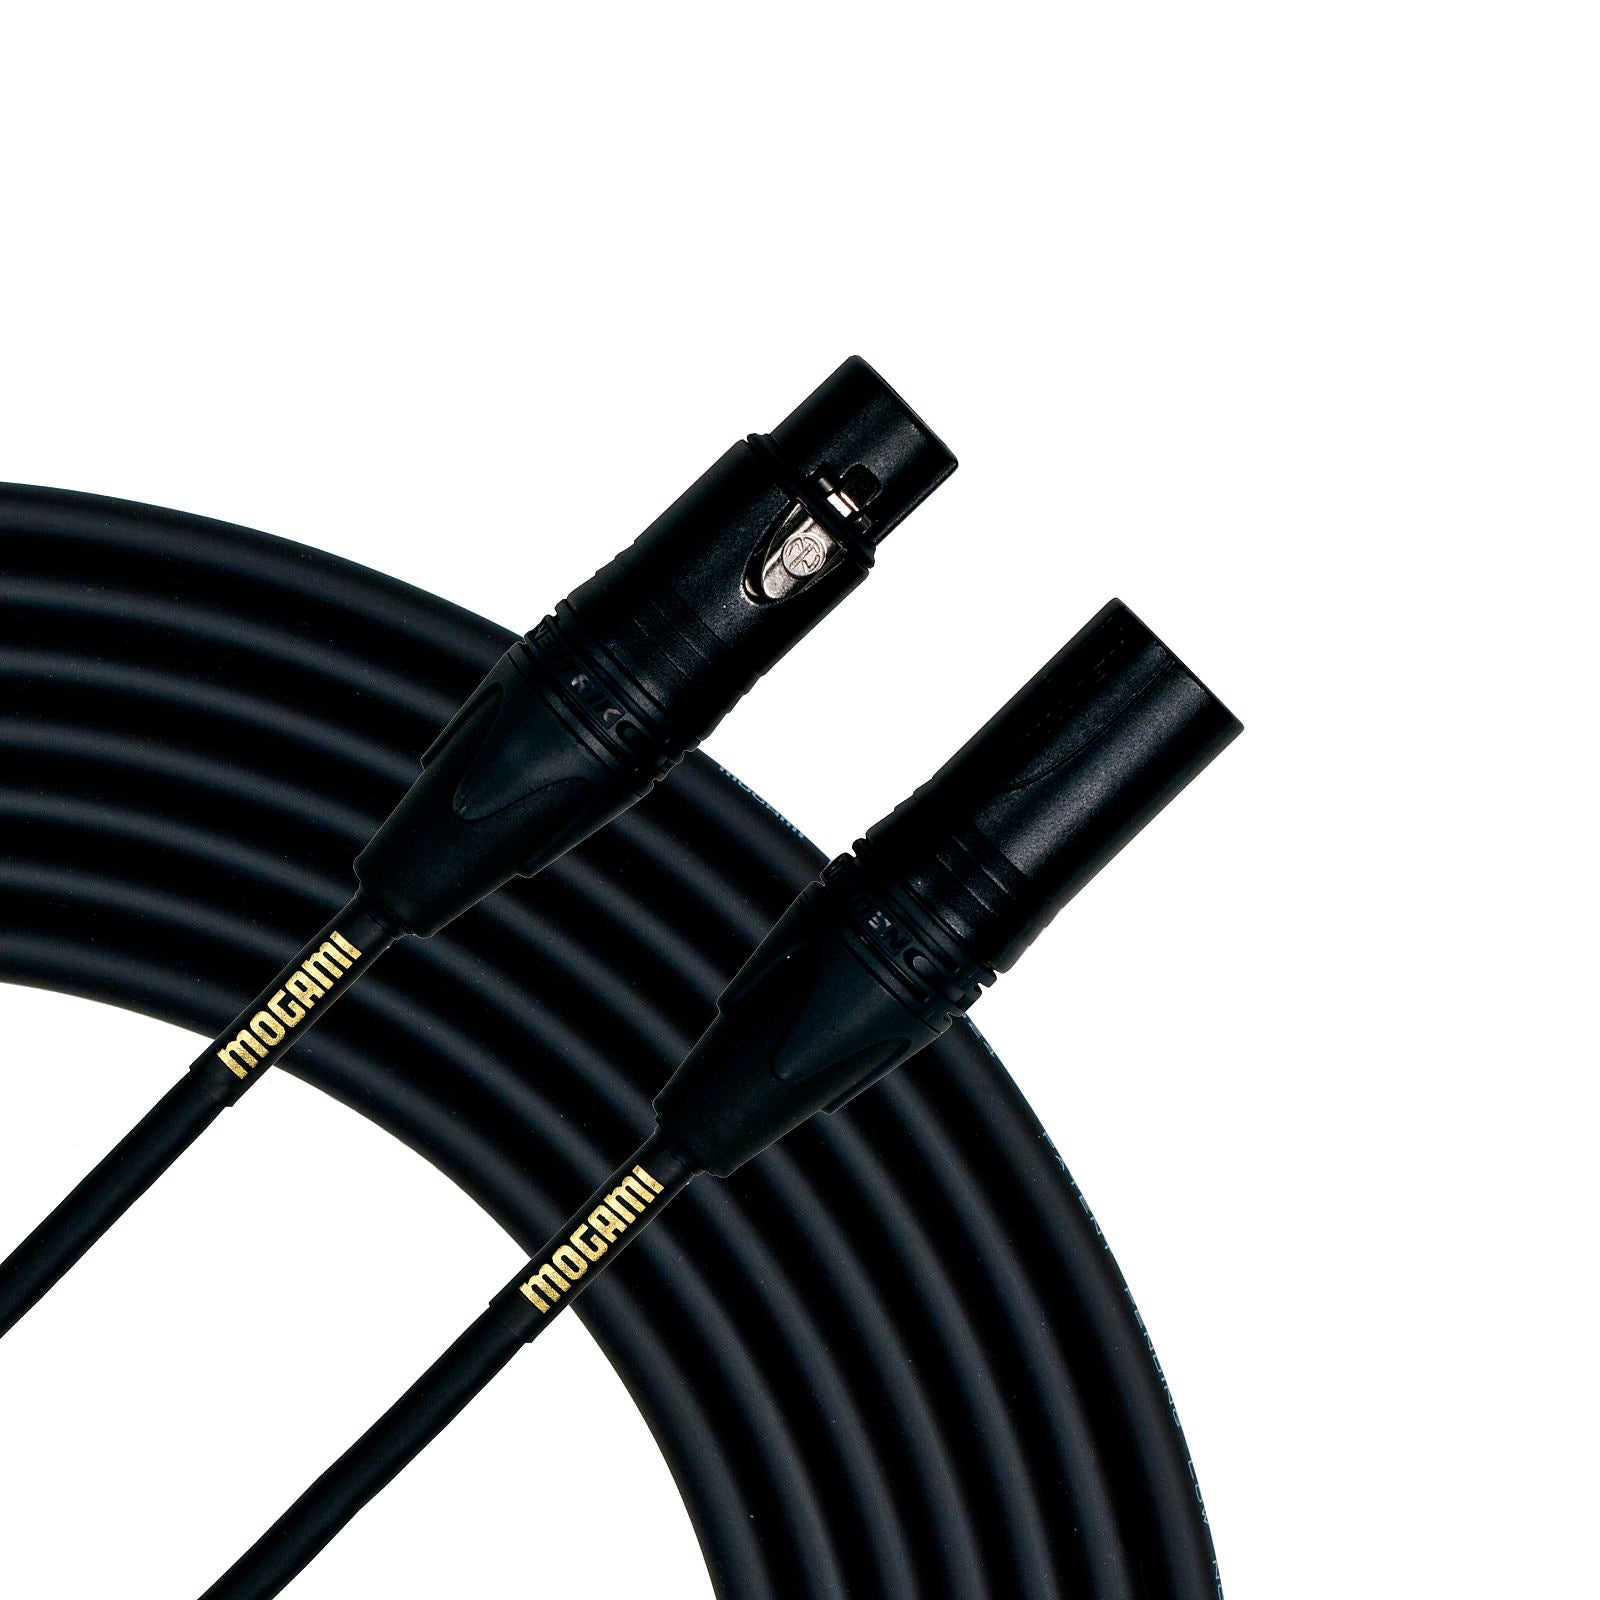 Mogami Gold Studio Microphone Cable, 15 Foot